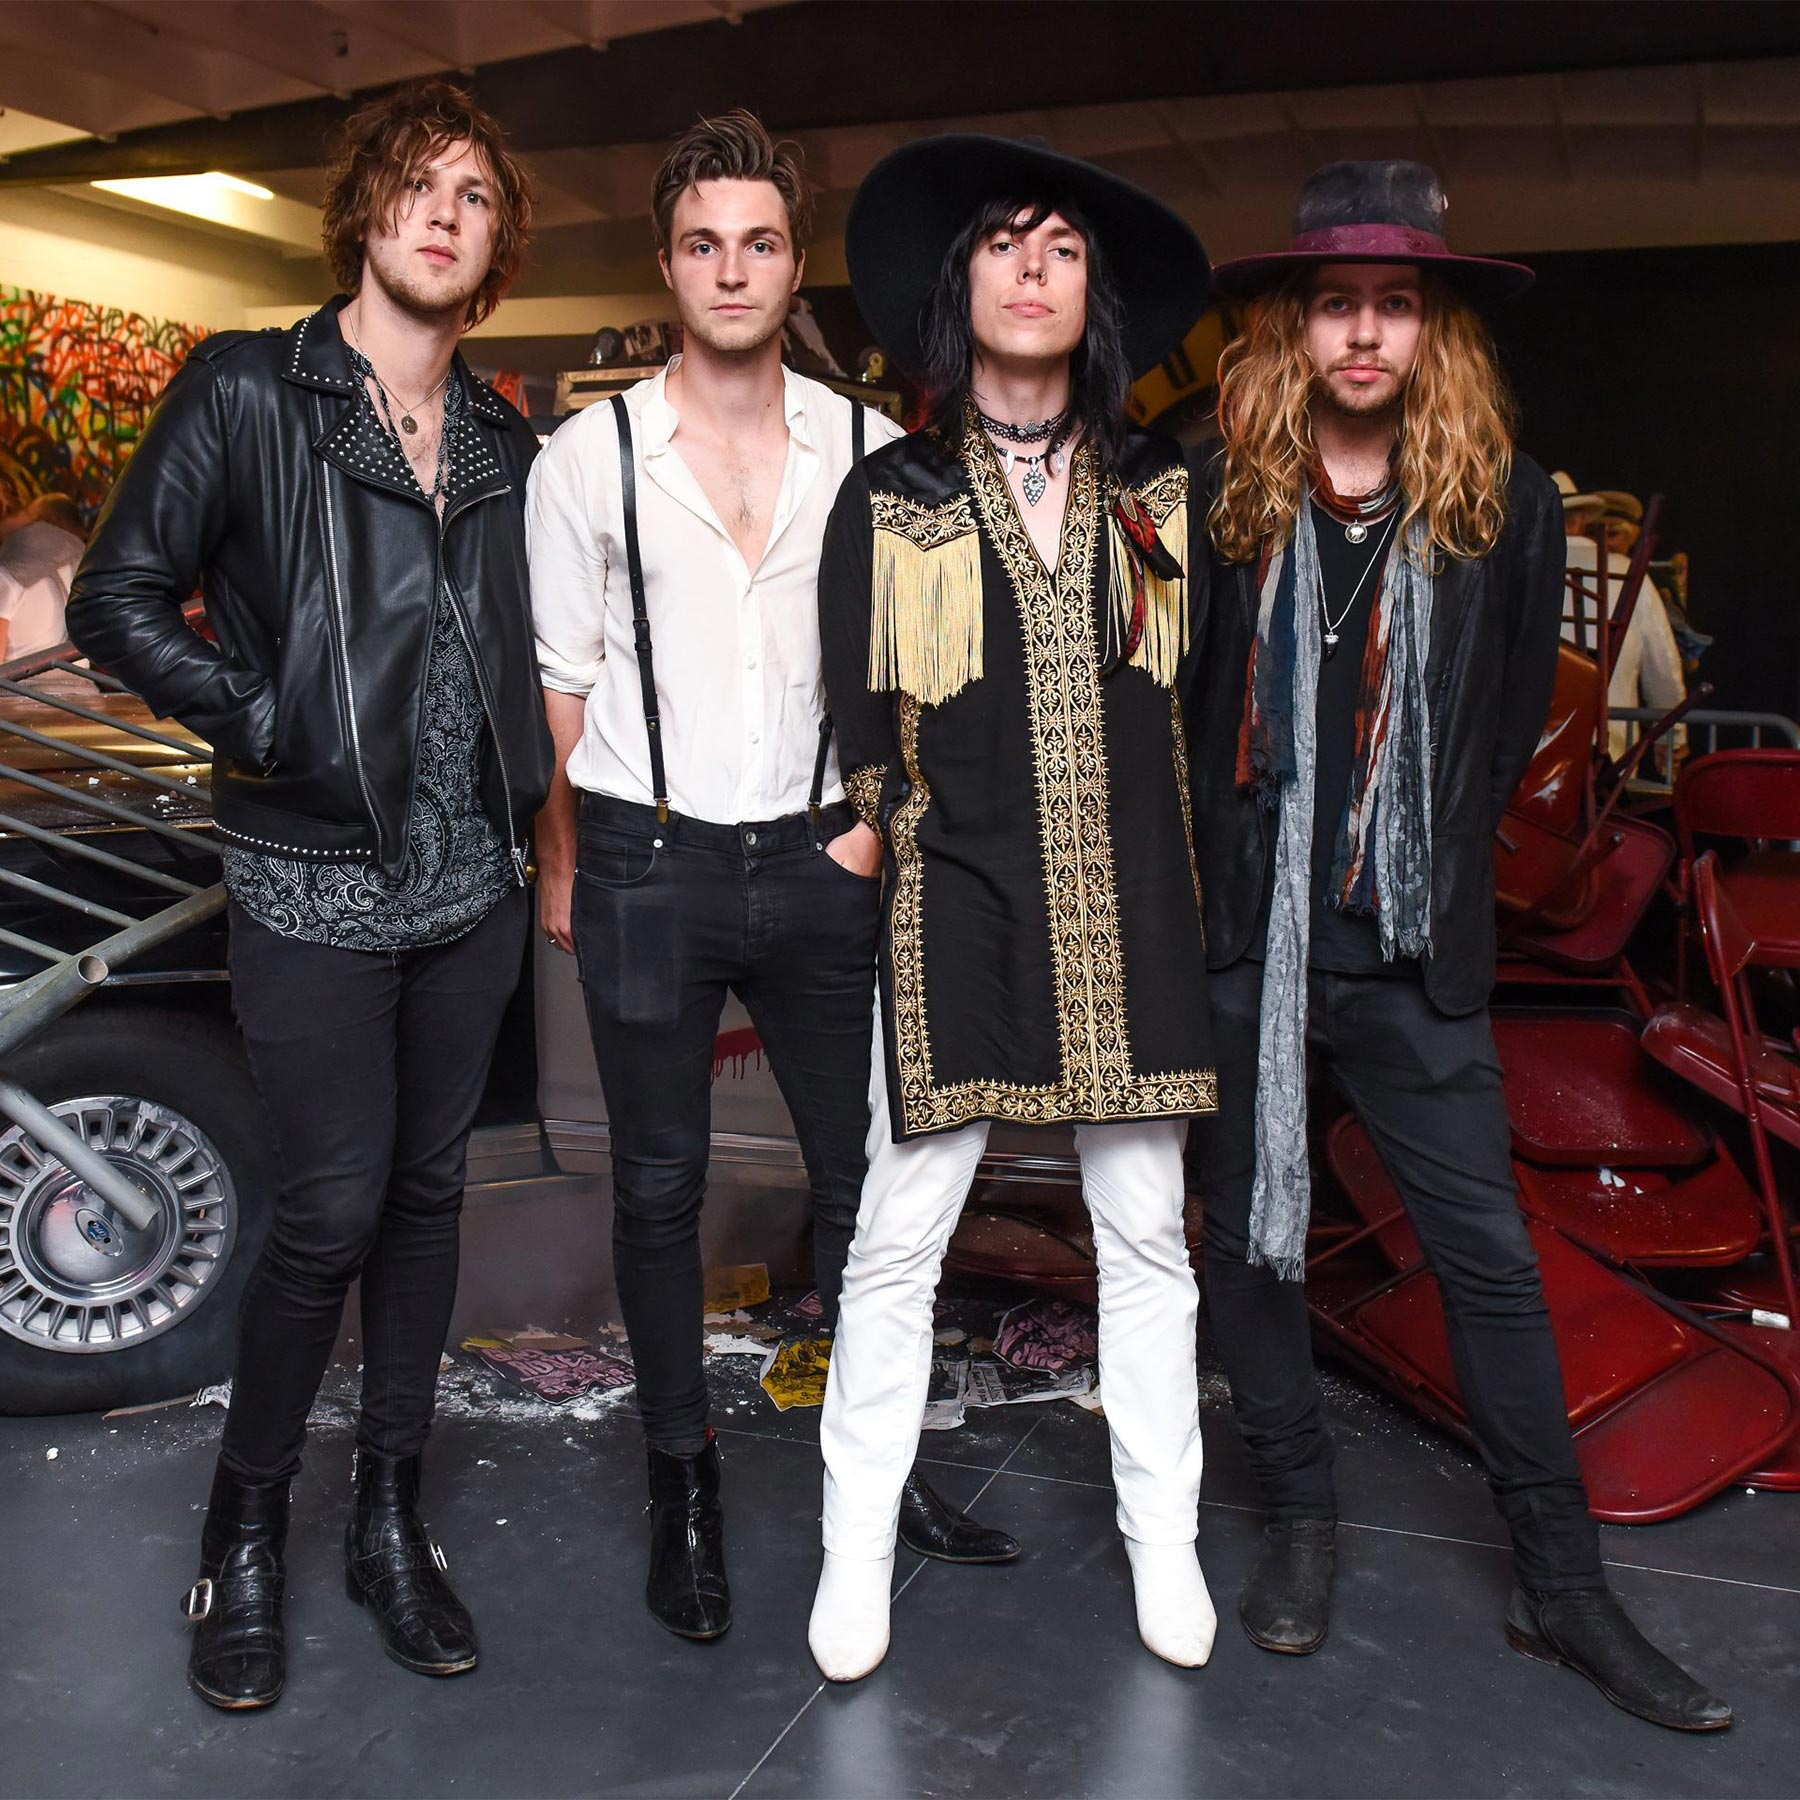 Guns N' Roses Was Here An Exclusive Retail Event in partnership with Maxfield and Bravado, Los Angeles, USA - 10 Aug 2017